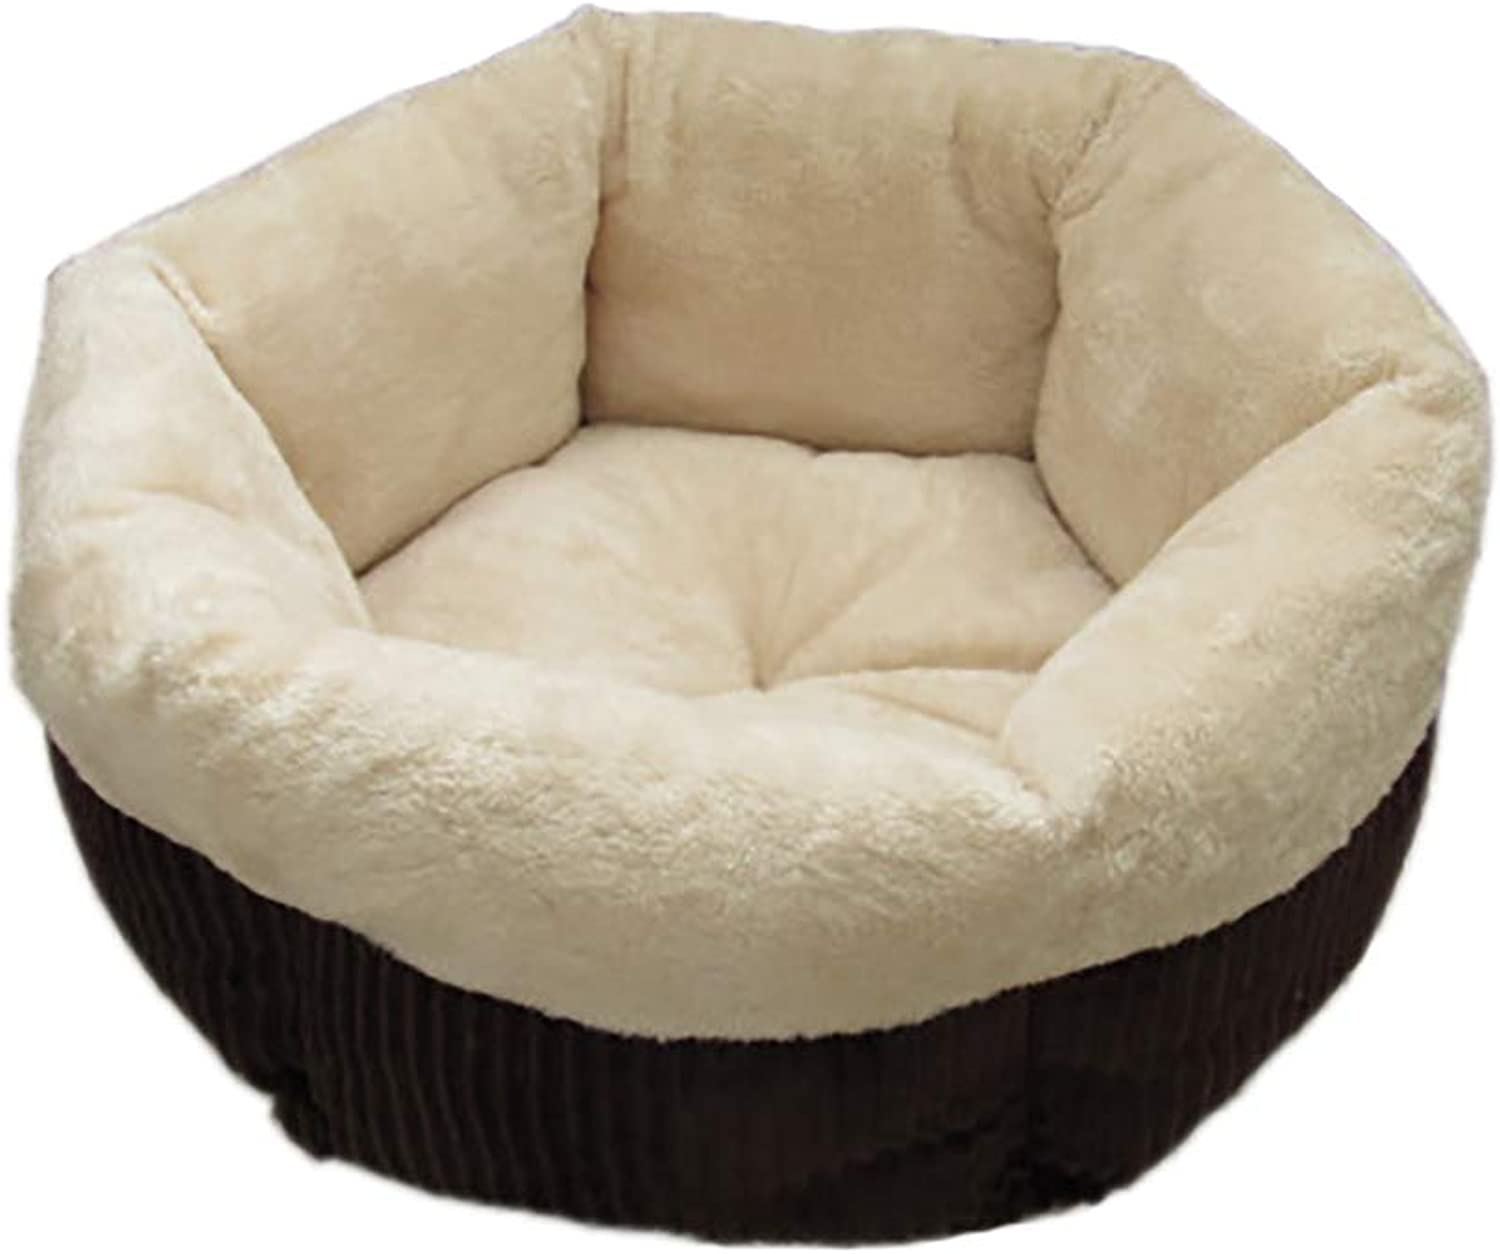 Deluxe Pet Beds,Small Animal pet Bed cave,pet beds for Cats Small Dogs, Styles,Easy Maintenance Dog Bed,Beige,S